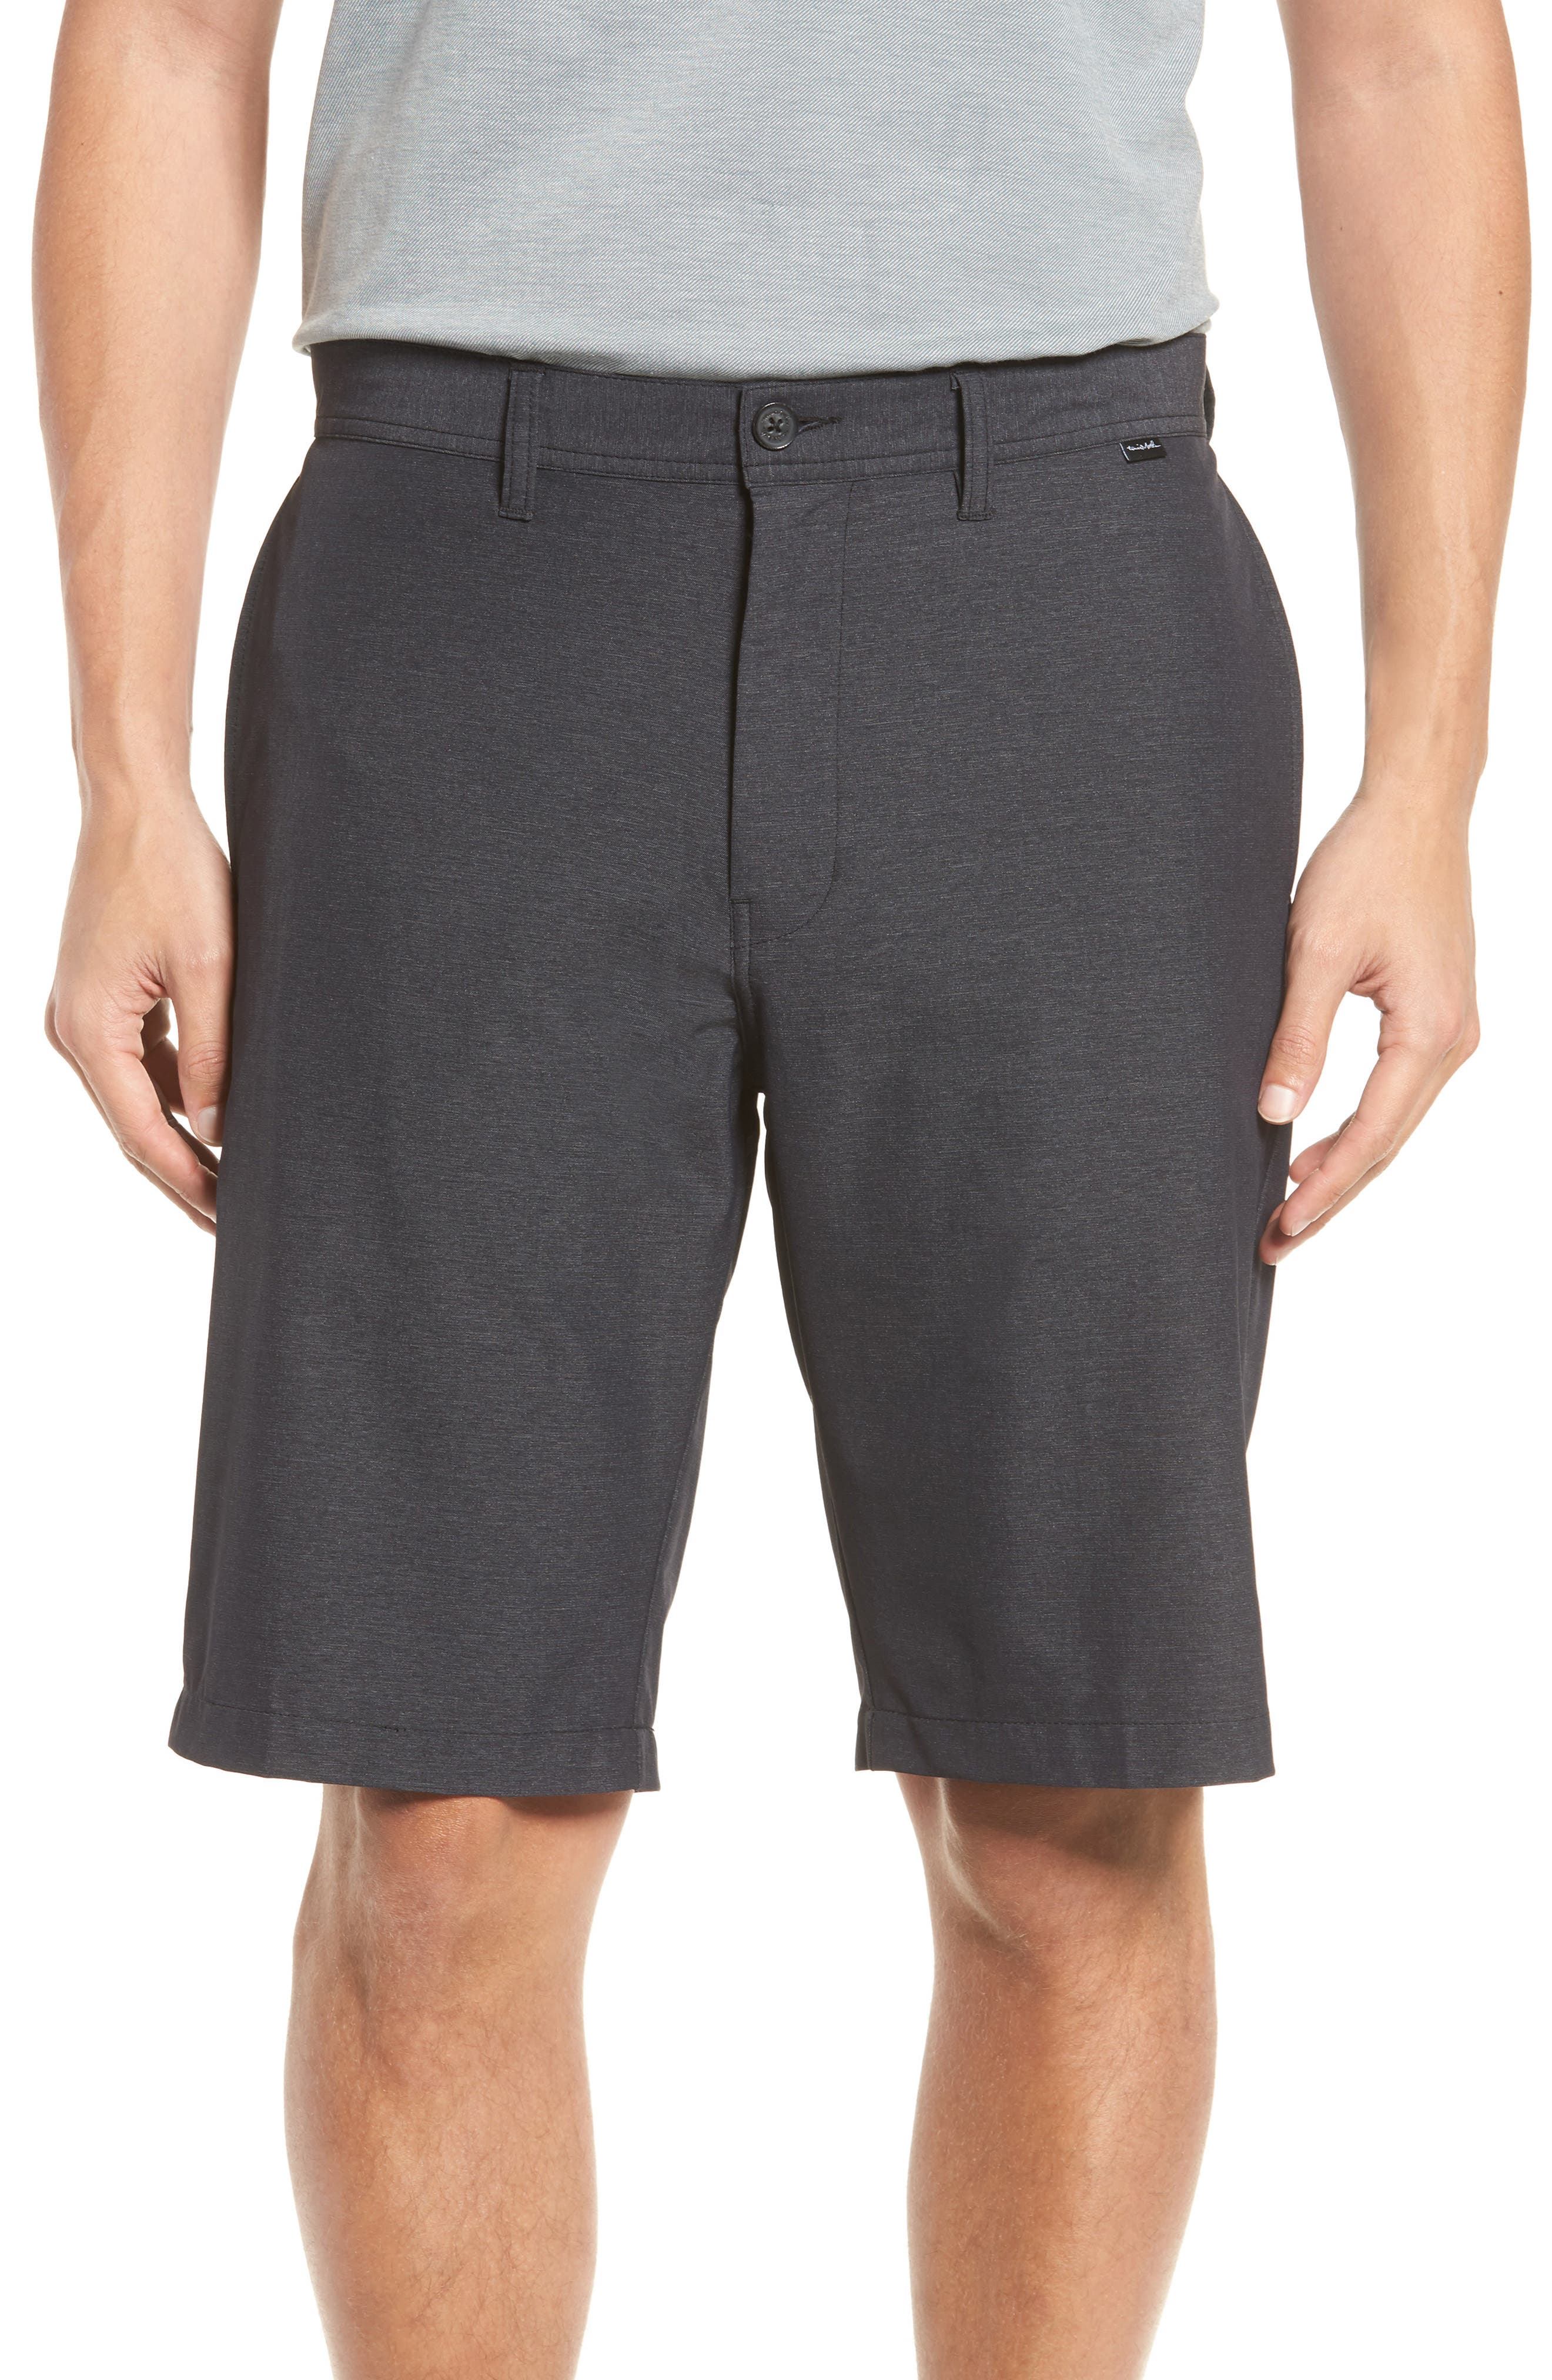 Travis Mathew Port O Shorts